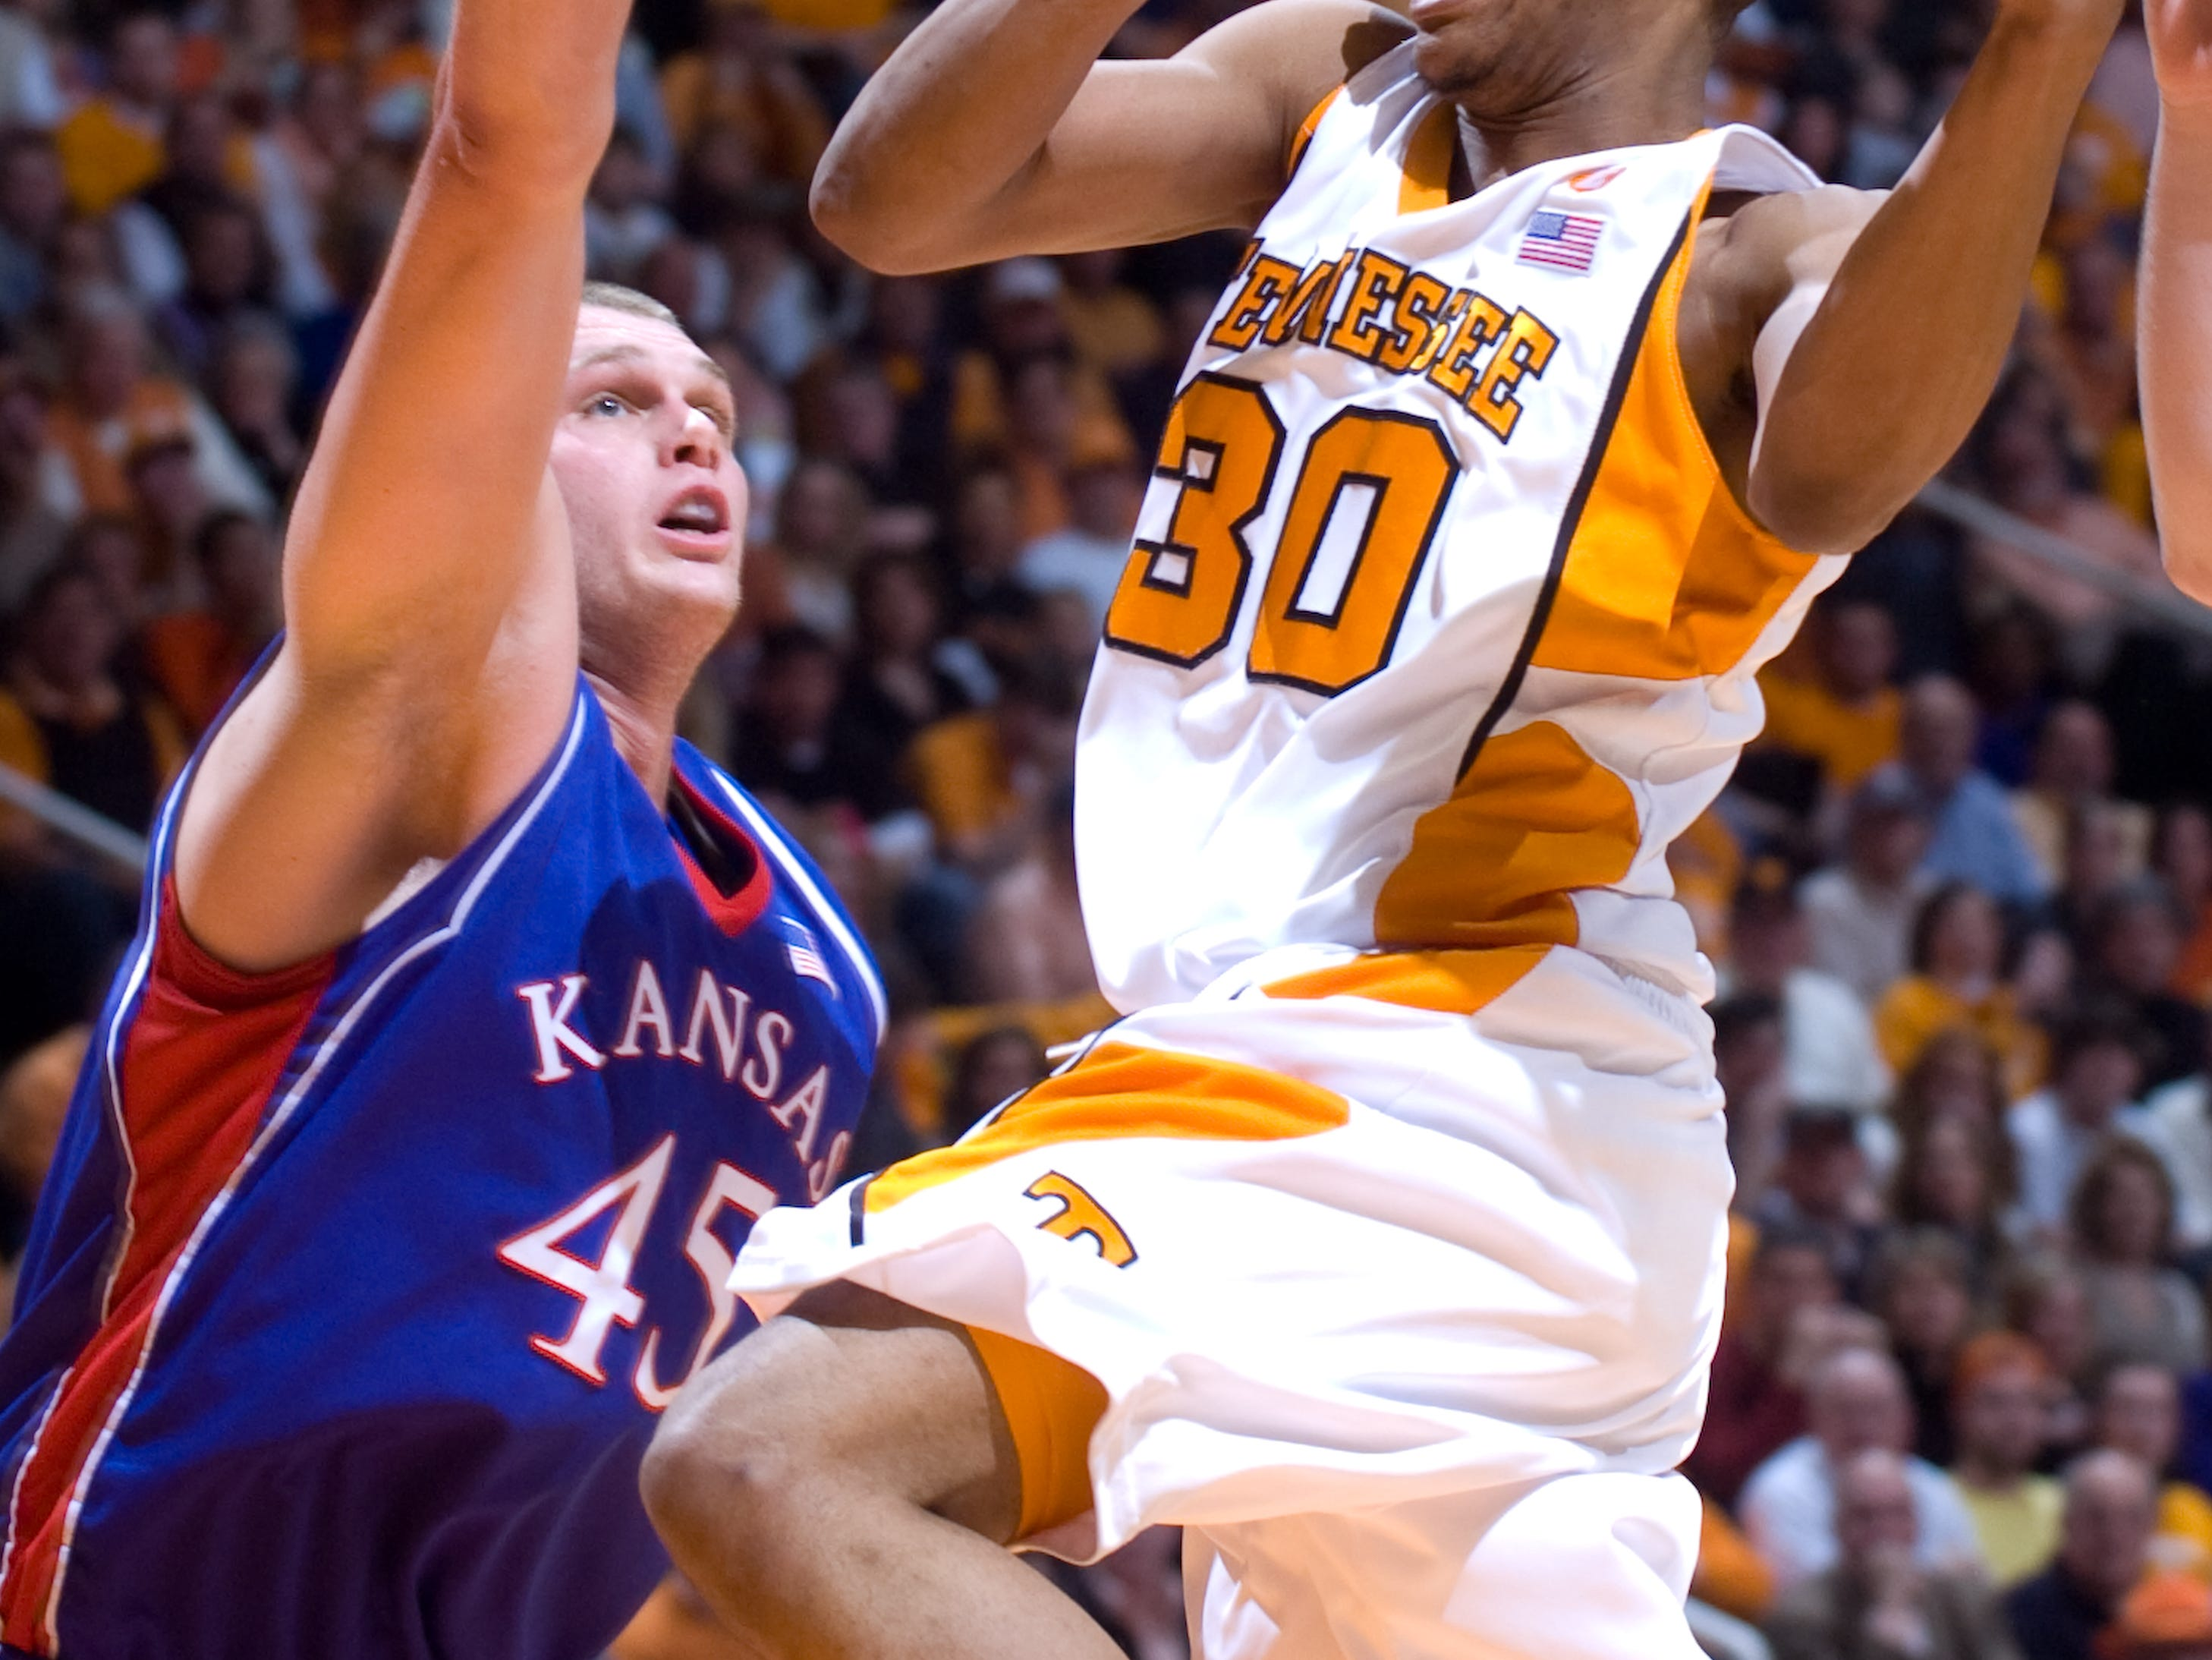 J.P. Prince drives towards the basket as Kansas' Cole Aldrich tries to defend. Tennessee upsets number one ranked  Kansas 76-68 at Thompson-Boling Arena  Sunday, Jan 10, 2010.